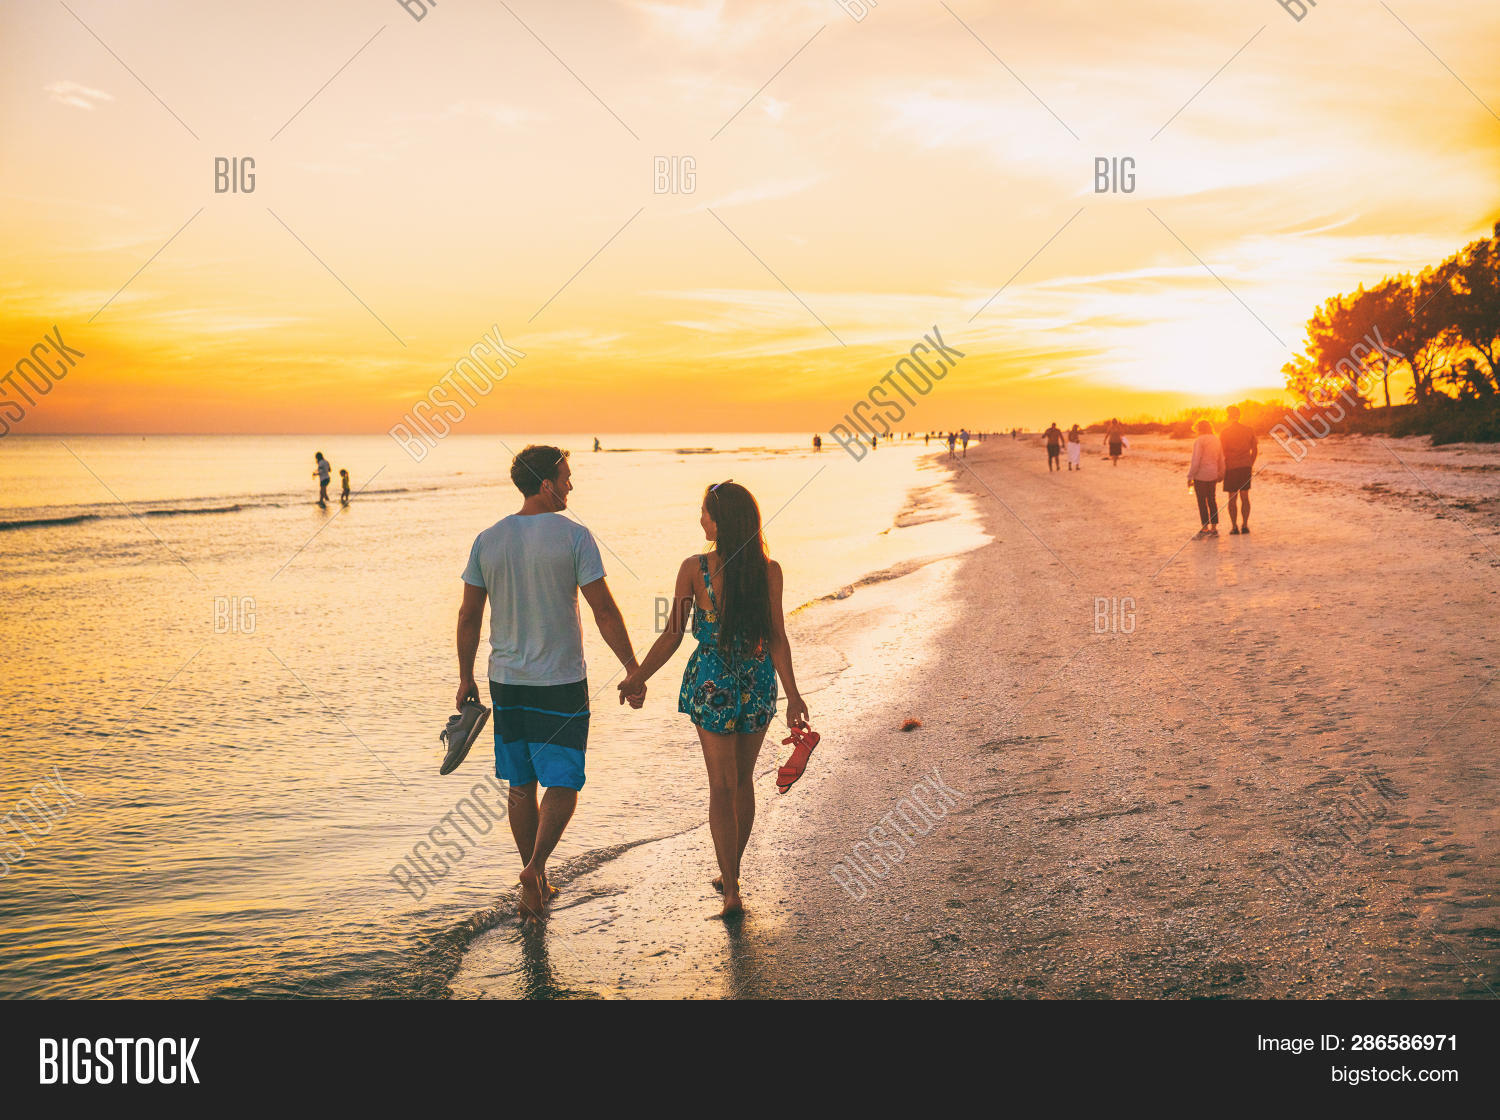 adults,american,barefoot,beach,captiva,caribbean,couple,family,florida,fort myers,girl,gulf,hands,happy,holding,holiday,honeymoon,island,lifestyle,lovers,man,men,mexico,nature,ocean,people,relaxing,romantic,sanibel,sea,shelling,shoes,silhouettes,south,stroll,summer,sun,sunset,thailand,tourists,travel,two,usa,vacaction,vacation,vacations,walk,woman,women